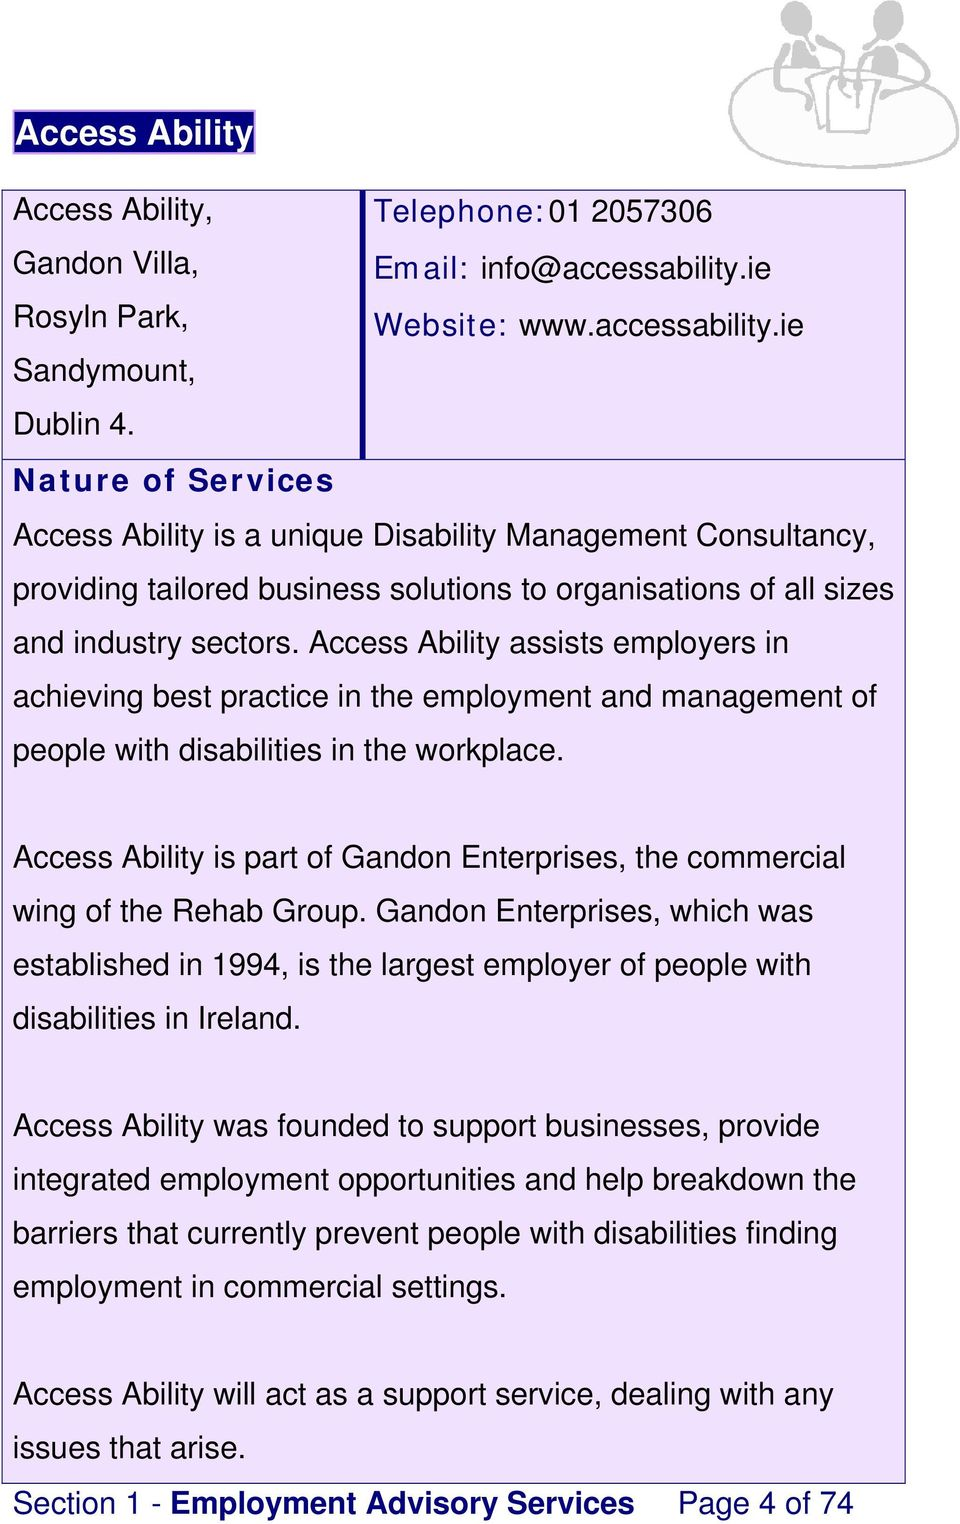 Access Ability assists employers in achieving best practice in the employment and management of people with disabilities in the workplace.